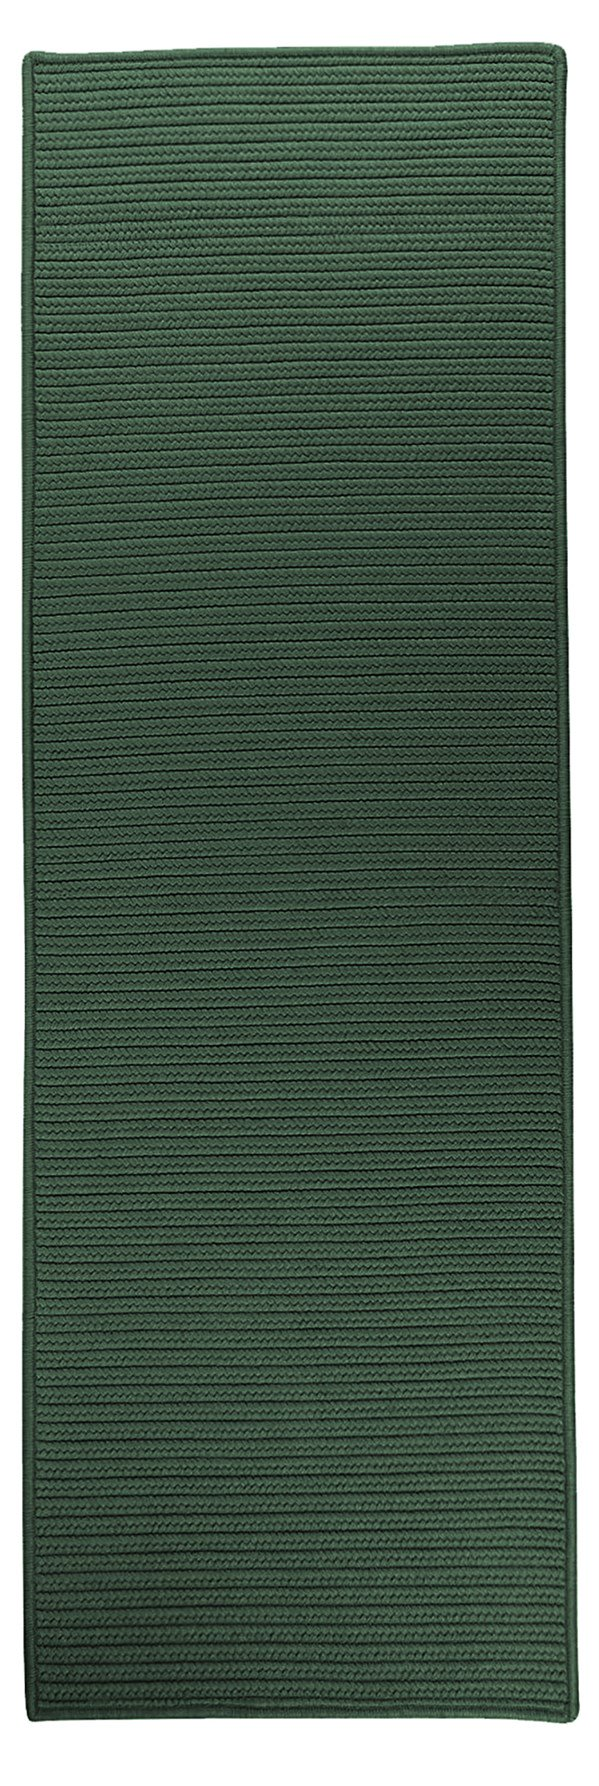 Colonial Mills Reversible Flat-Braid (Rect) Runner RT62 Area Rug